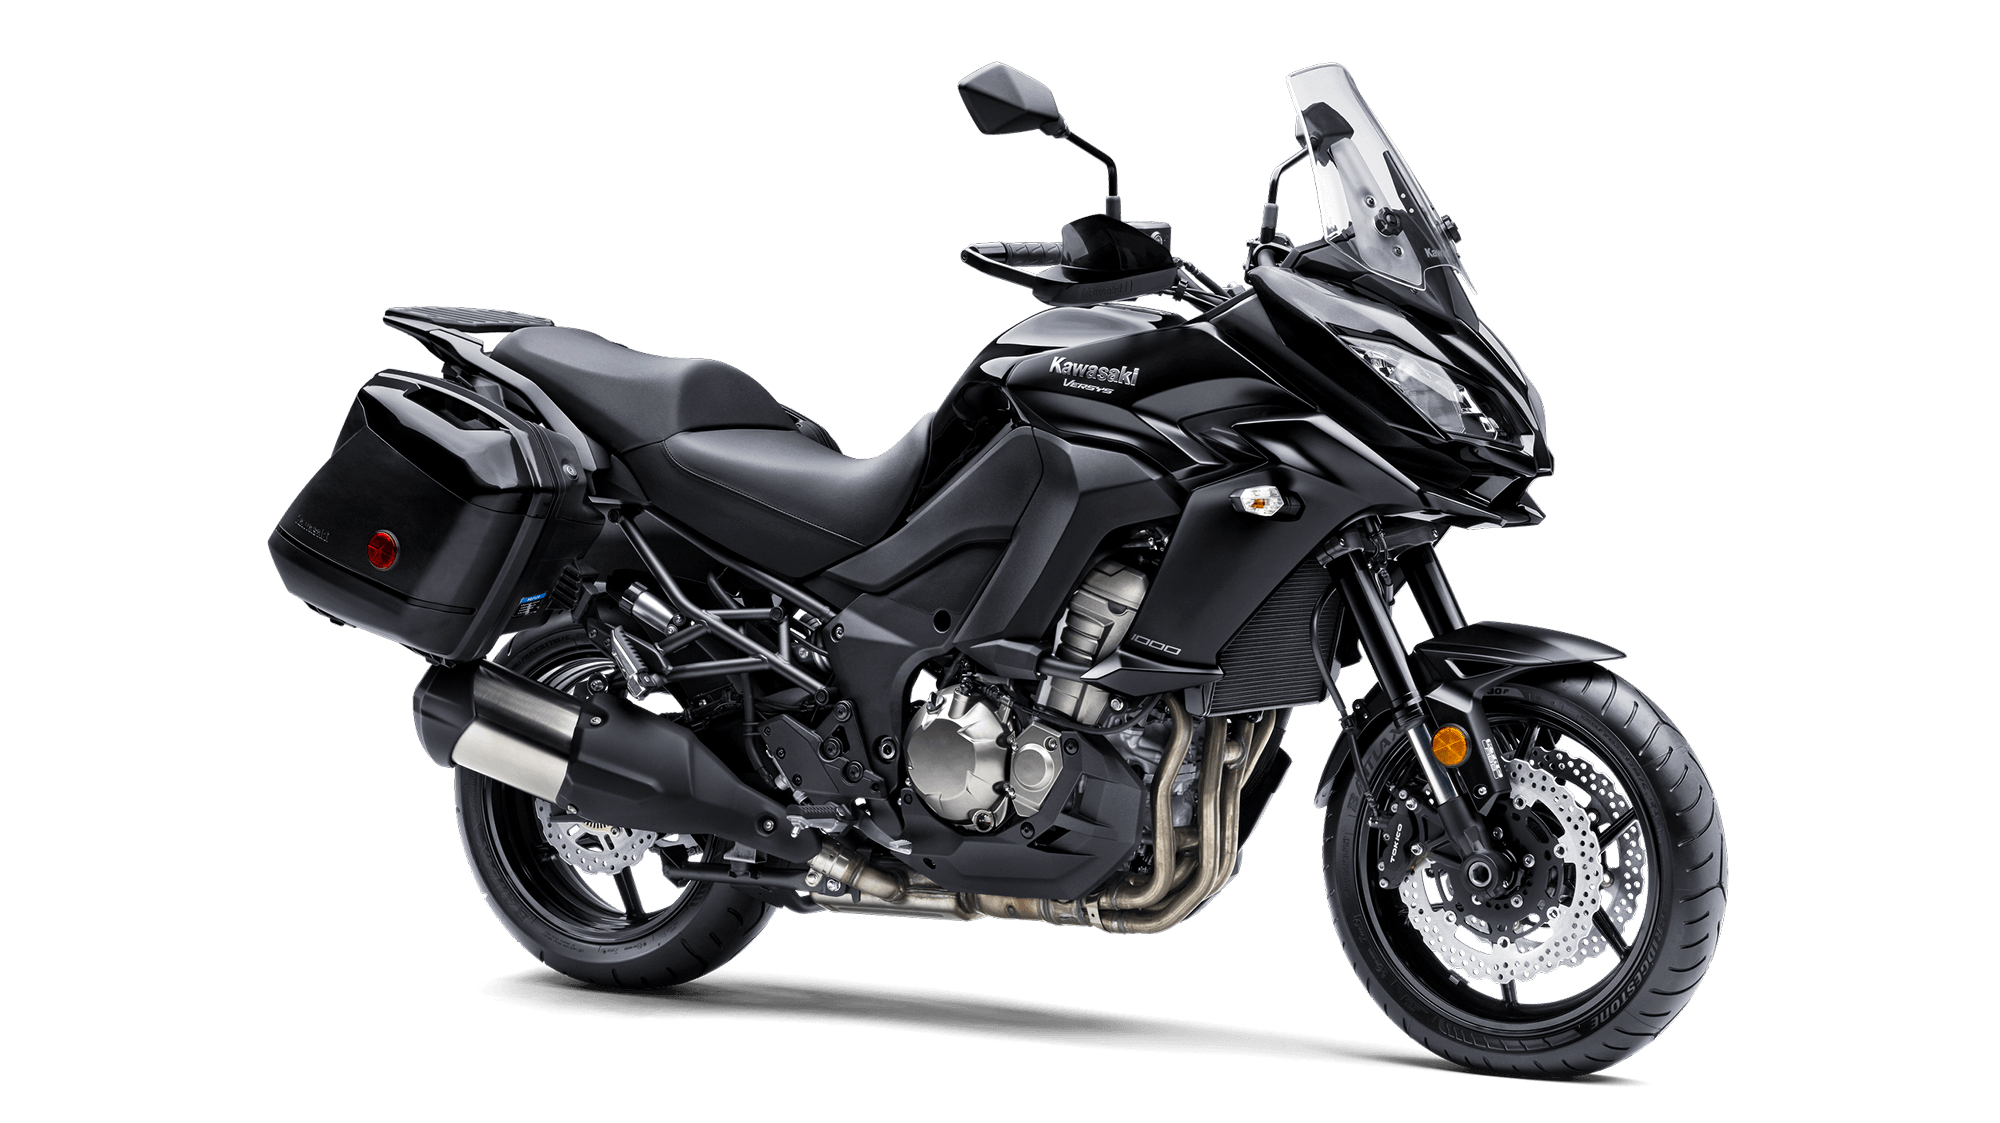 kawasaki versys 1000 launched in india price specs. Black Bedroom Furniture Sets. Home Design Ideas